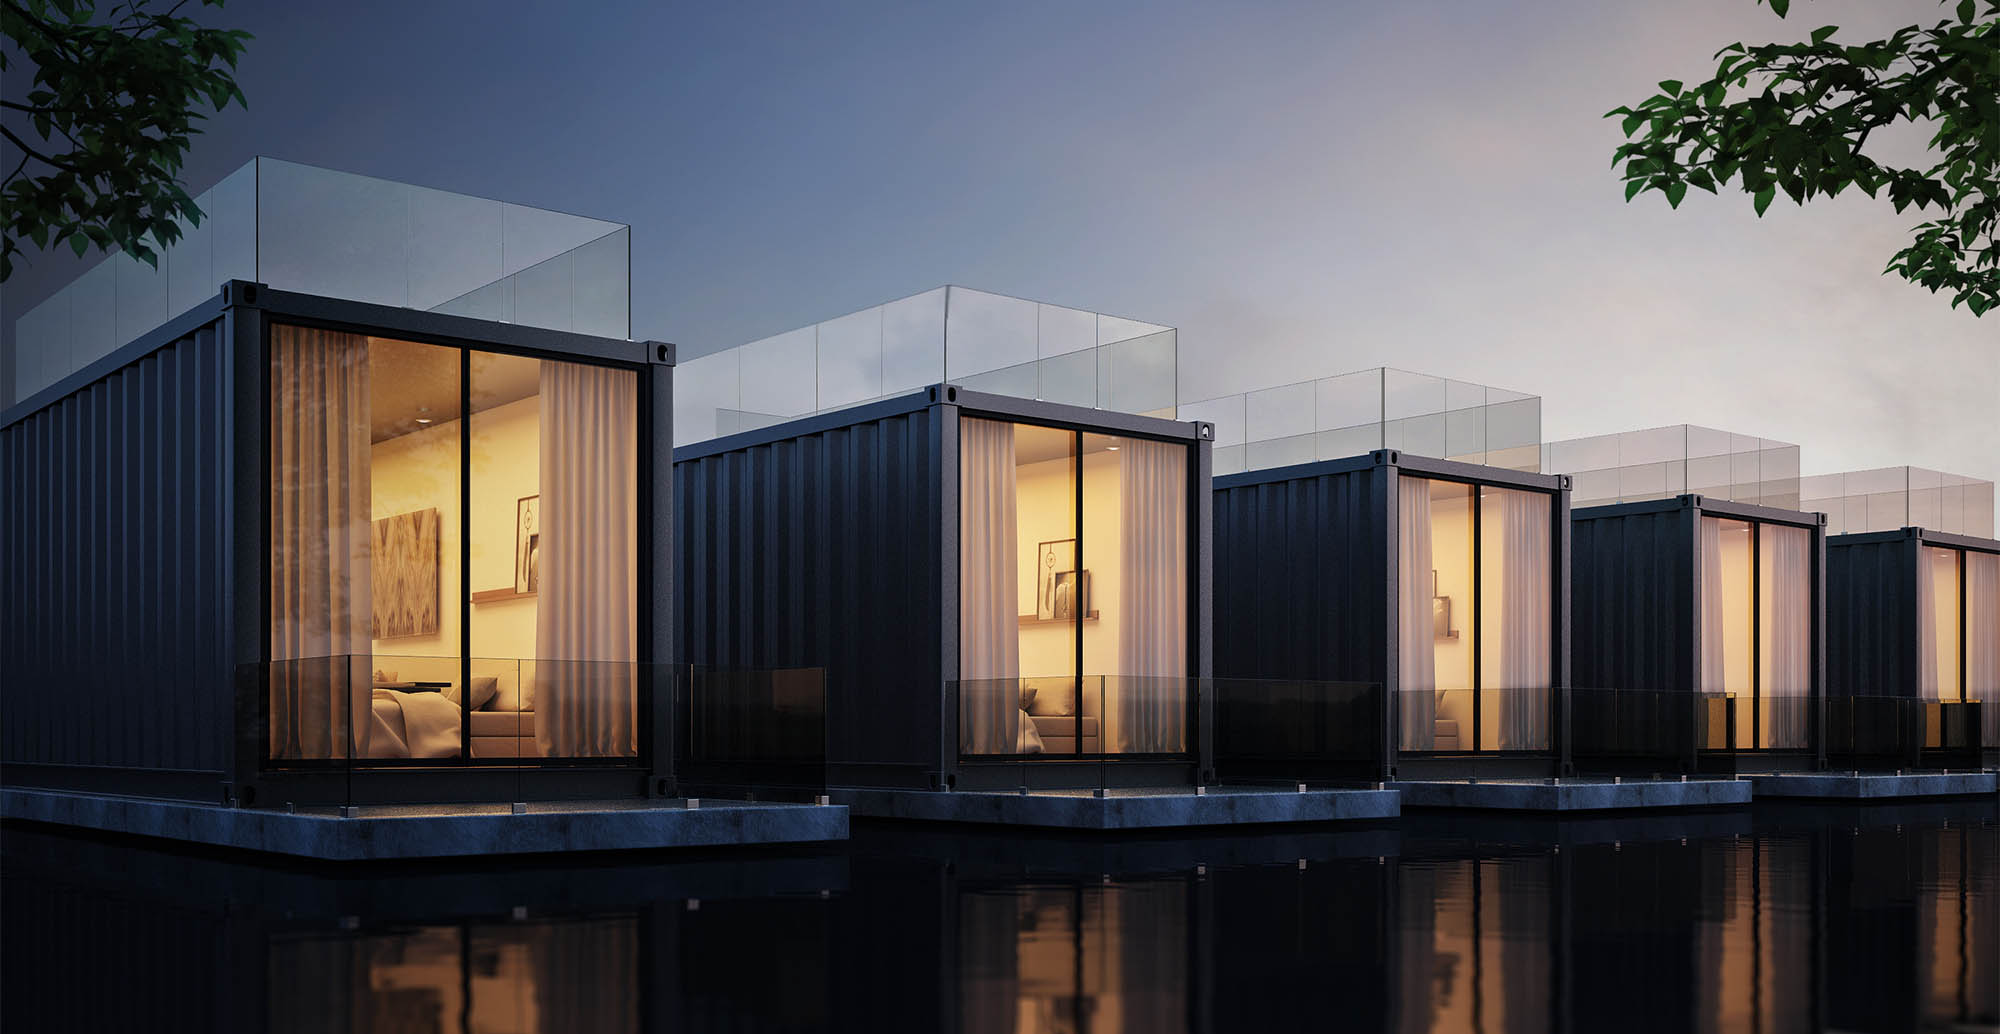 6 shipping container homes that you can buy right now - Pictures of container homes ...